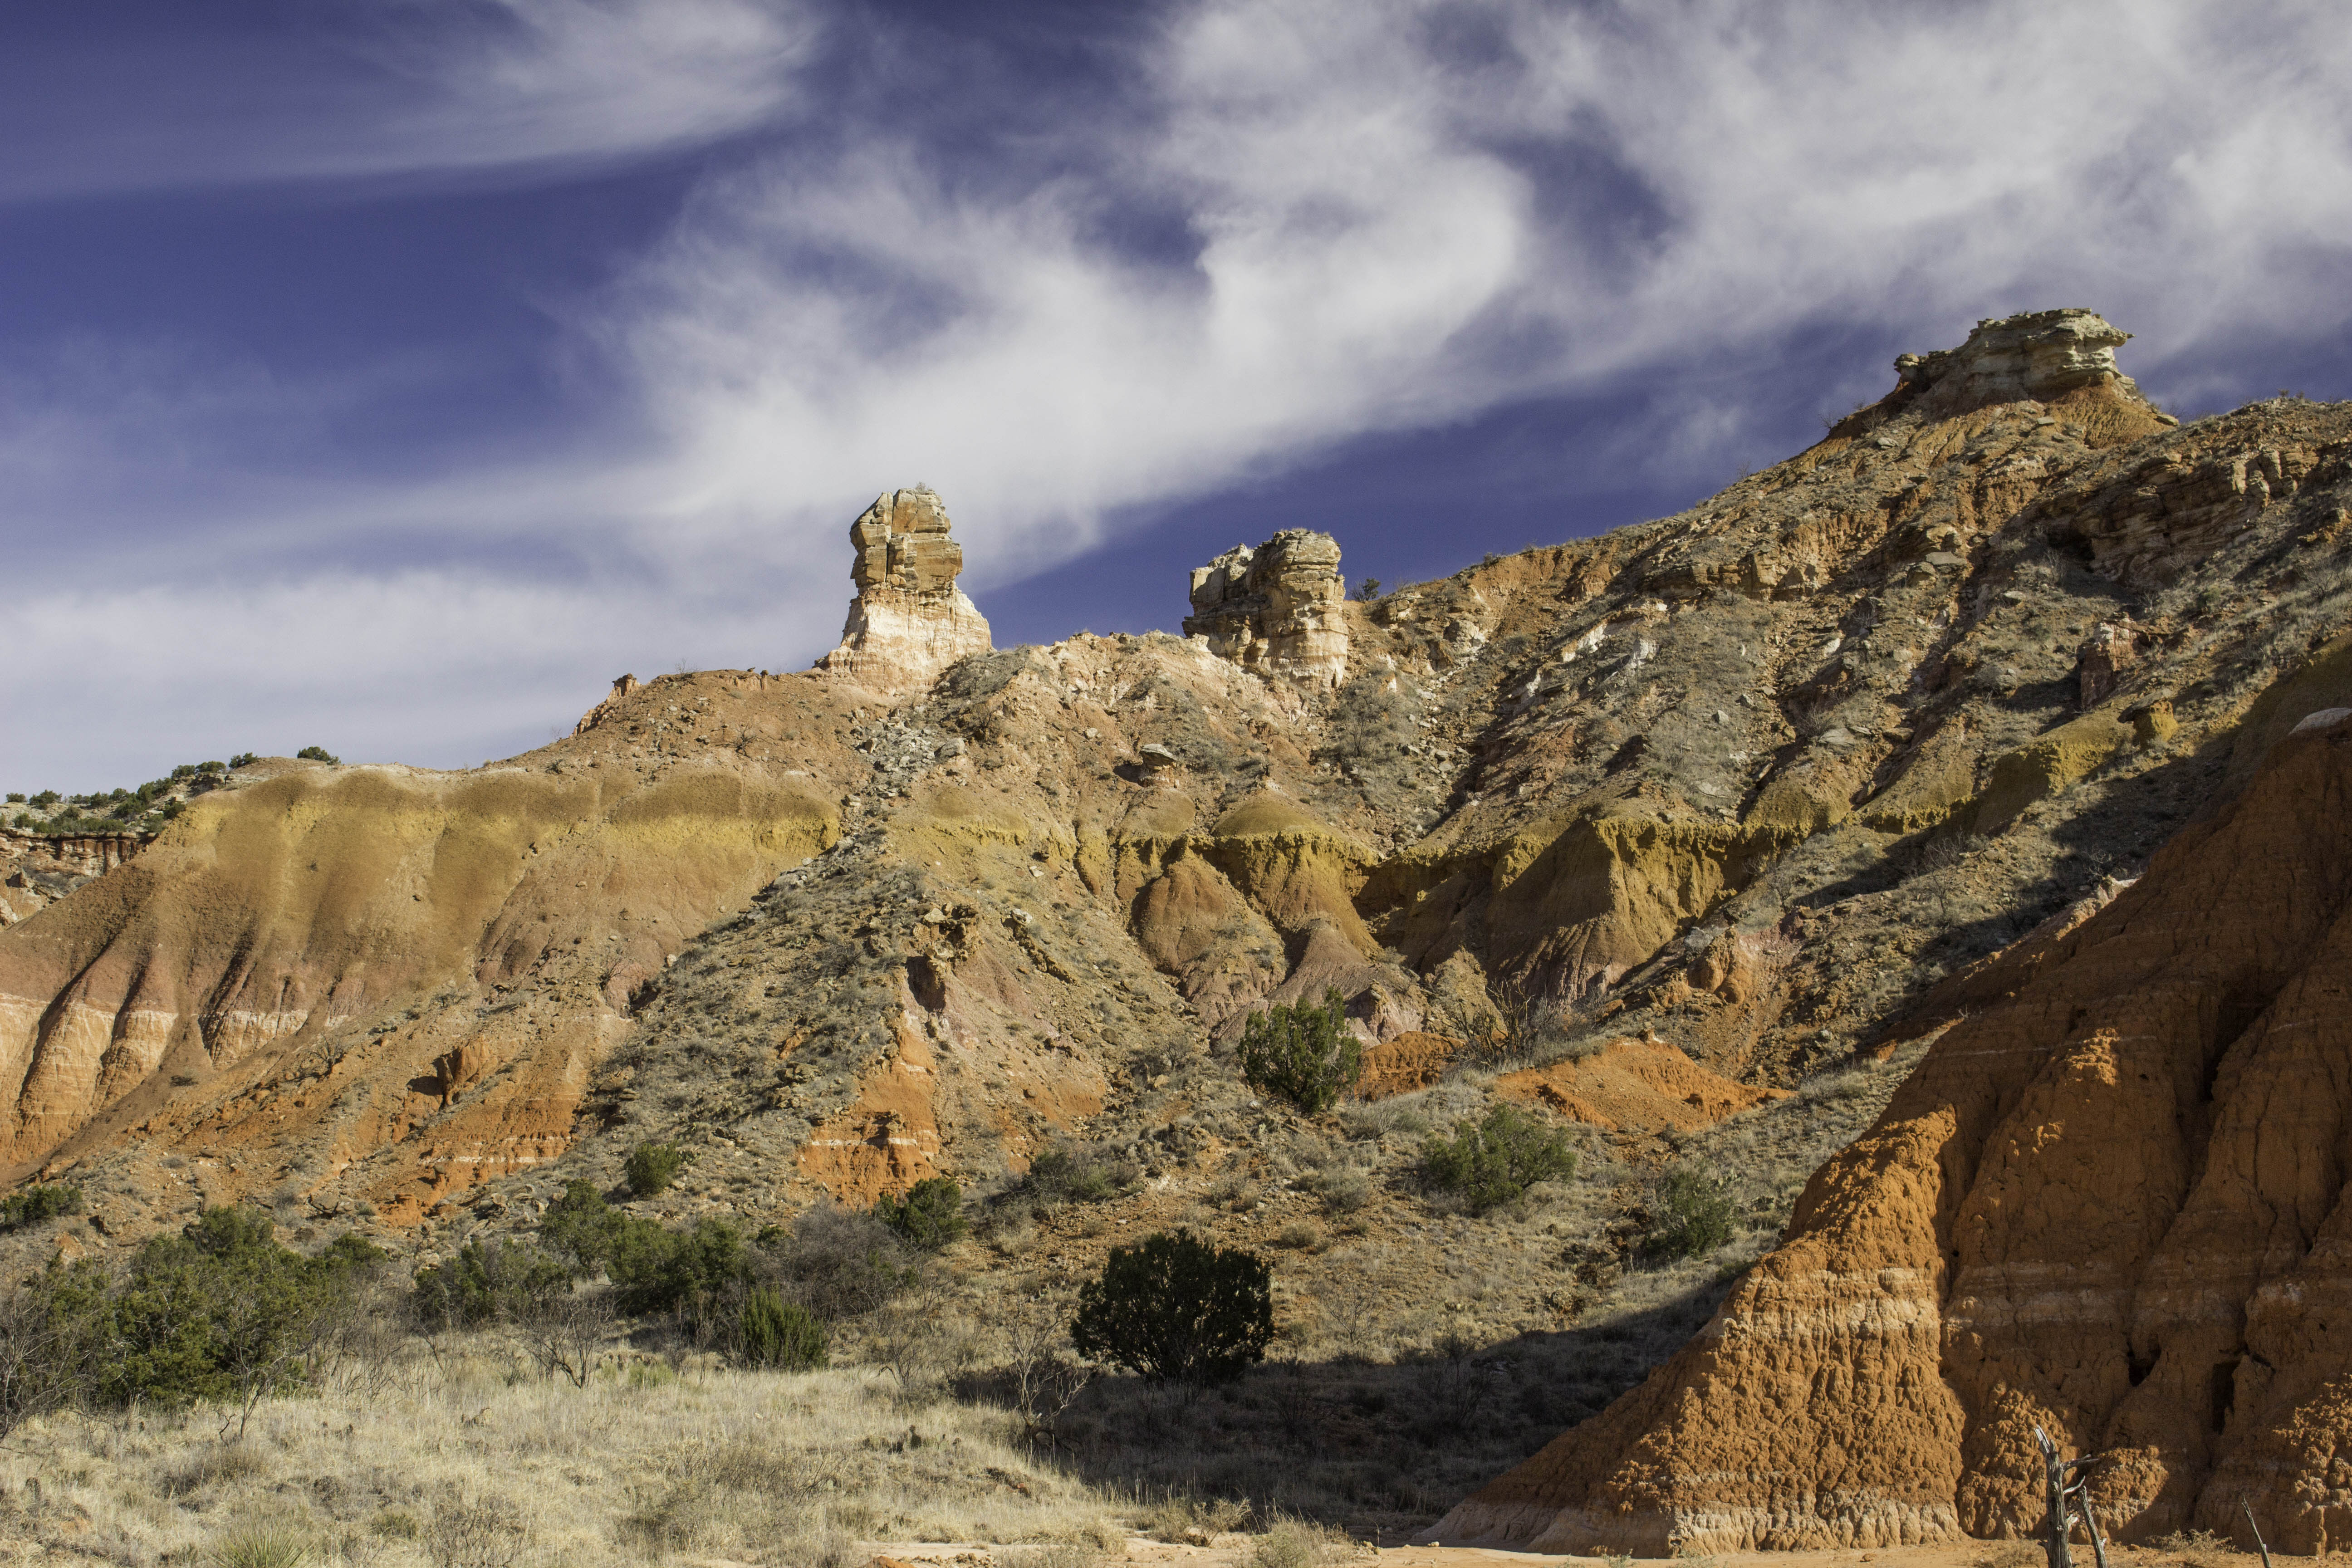 Palo Duro Canyon St Park, March 2019